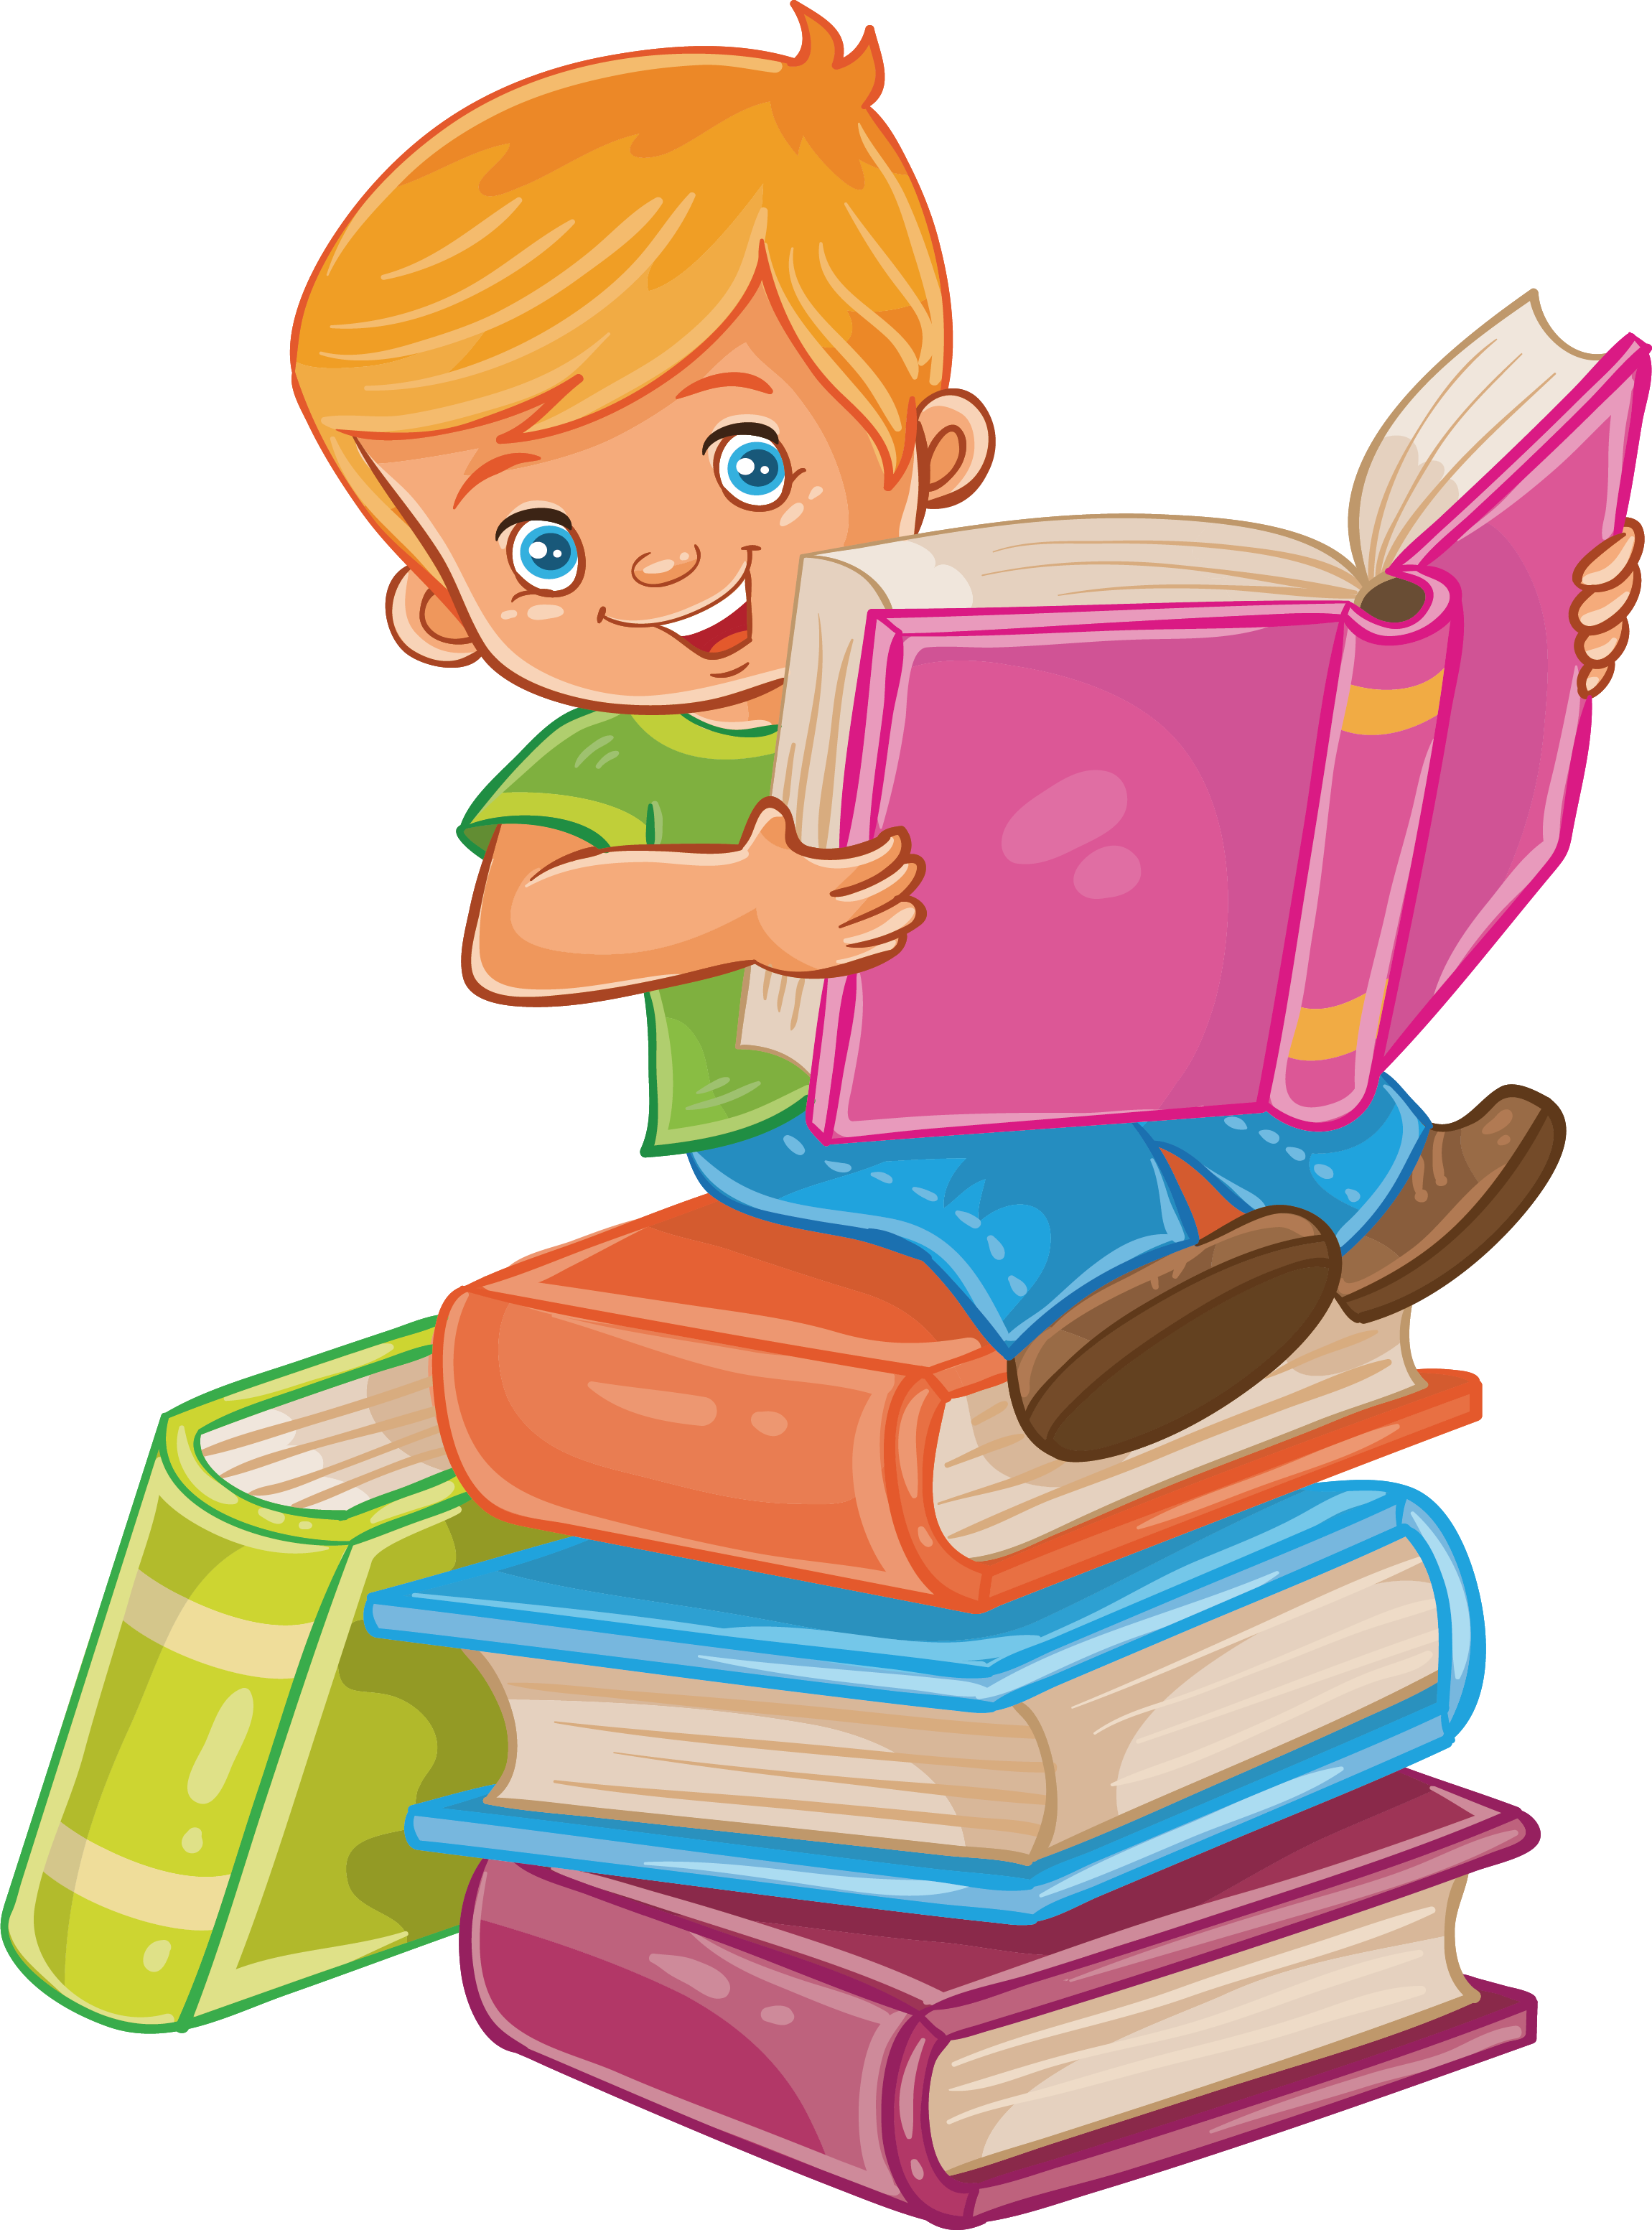 Apple sitting on books clipart png black and white stock Child Reading Royalty-free Illustration - Sit in a book, read a Book ... png black and white stock